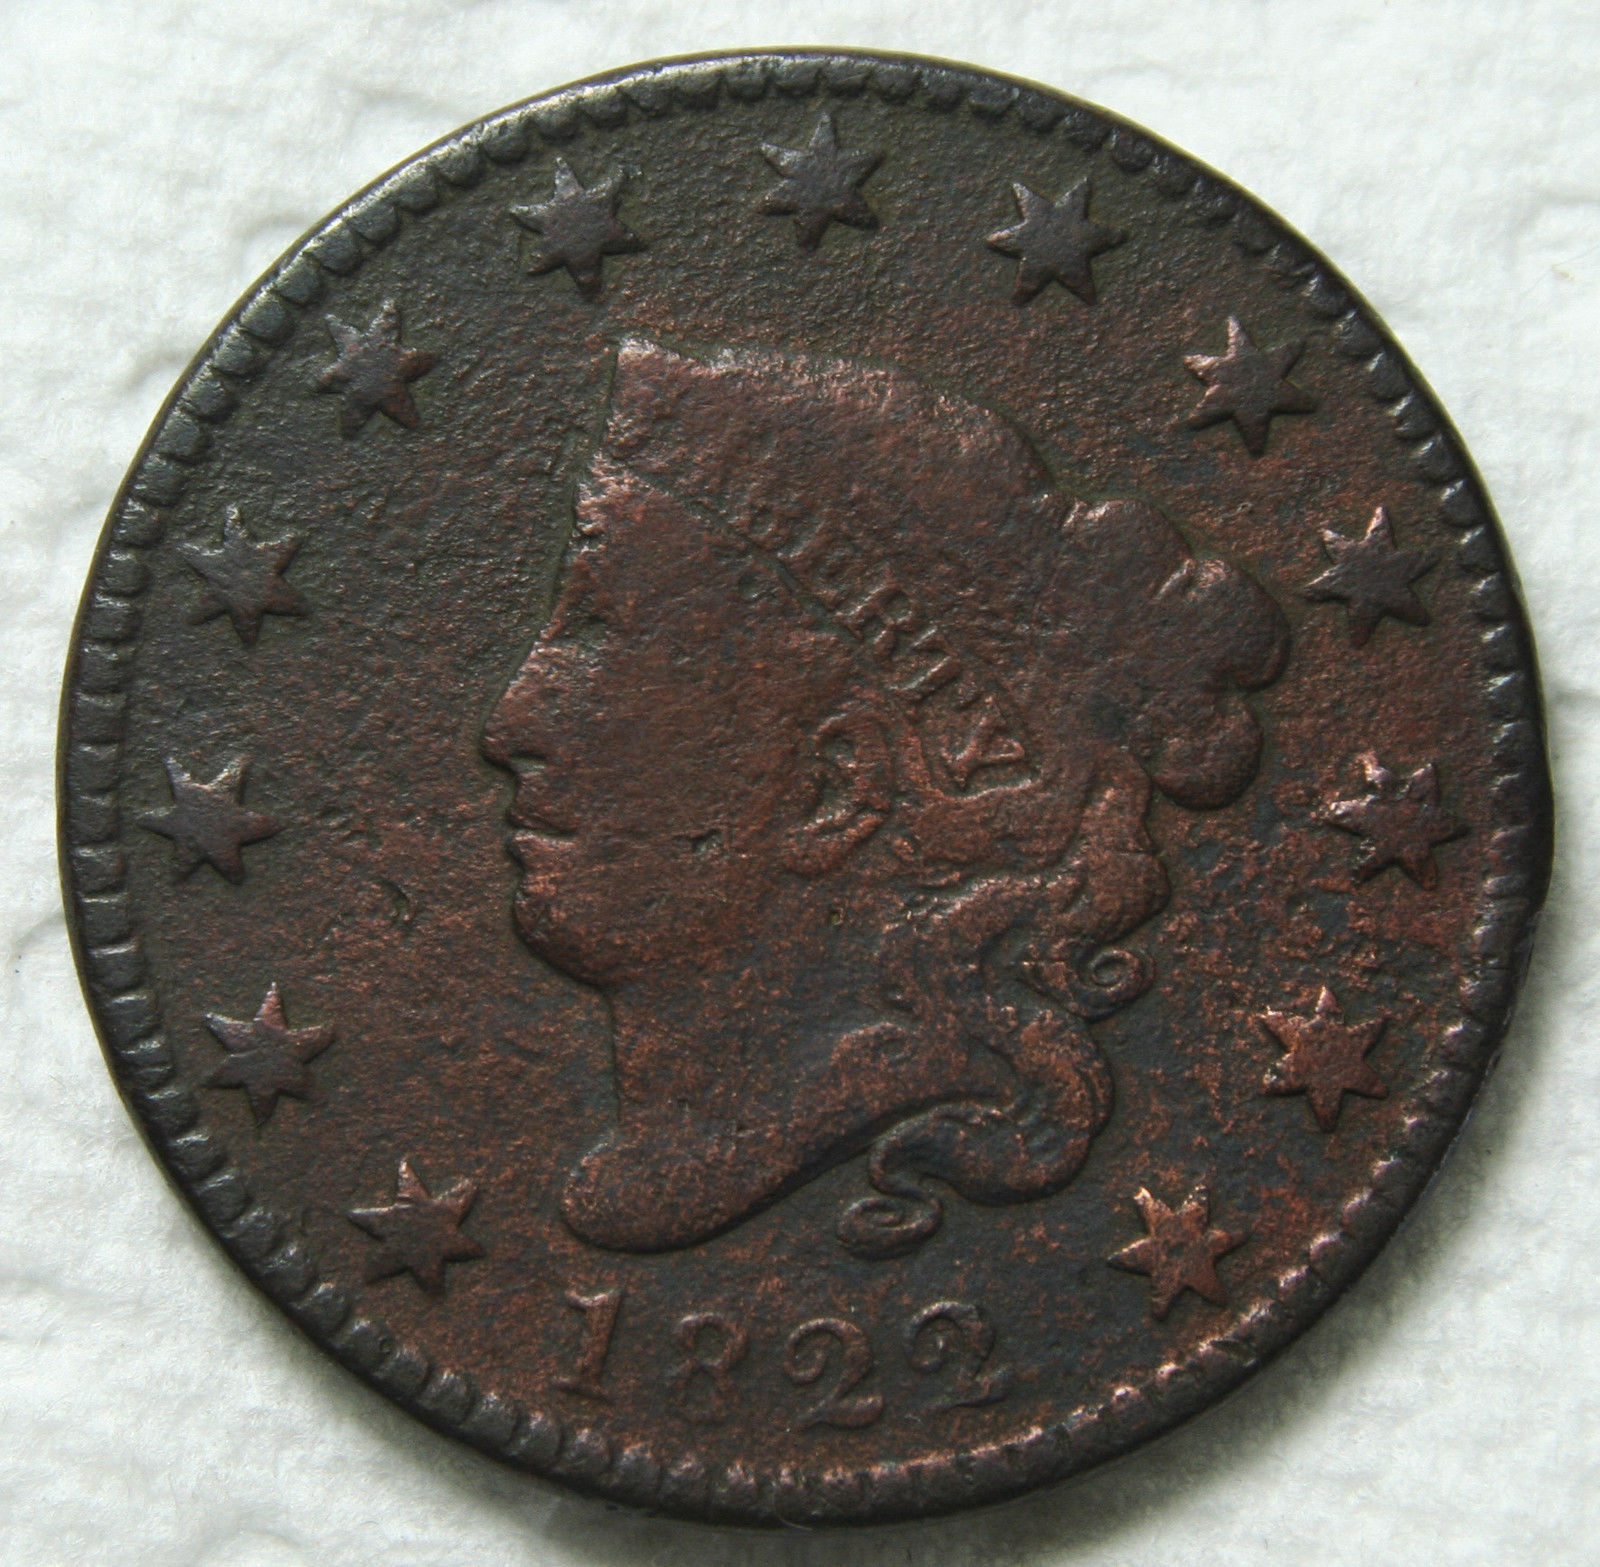 1822 Large Cent Liberty Head Coin Lot # MZ 3393